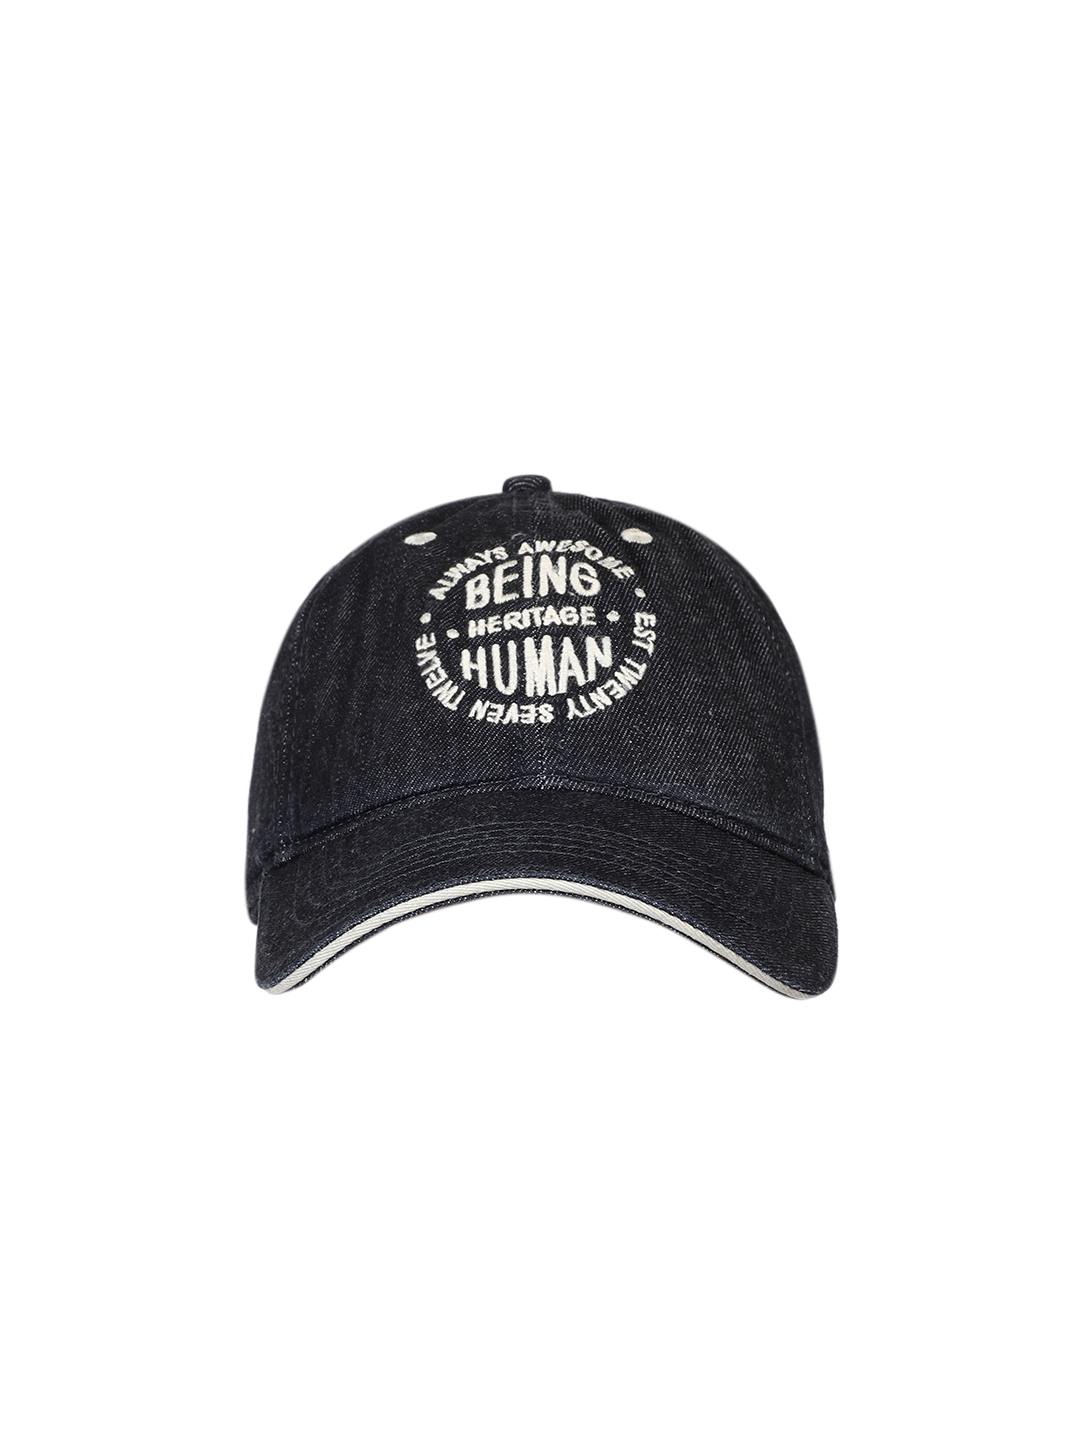 ad36770779a Buy Being Human Men Navy Blue Solid Baseball Cap - Caps for Men ...